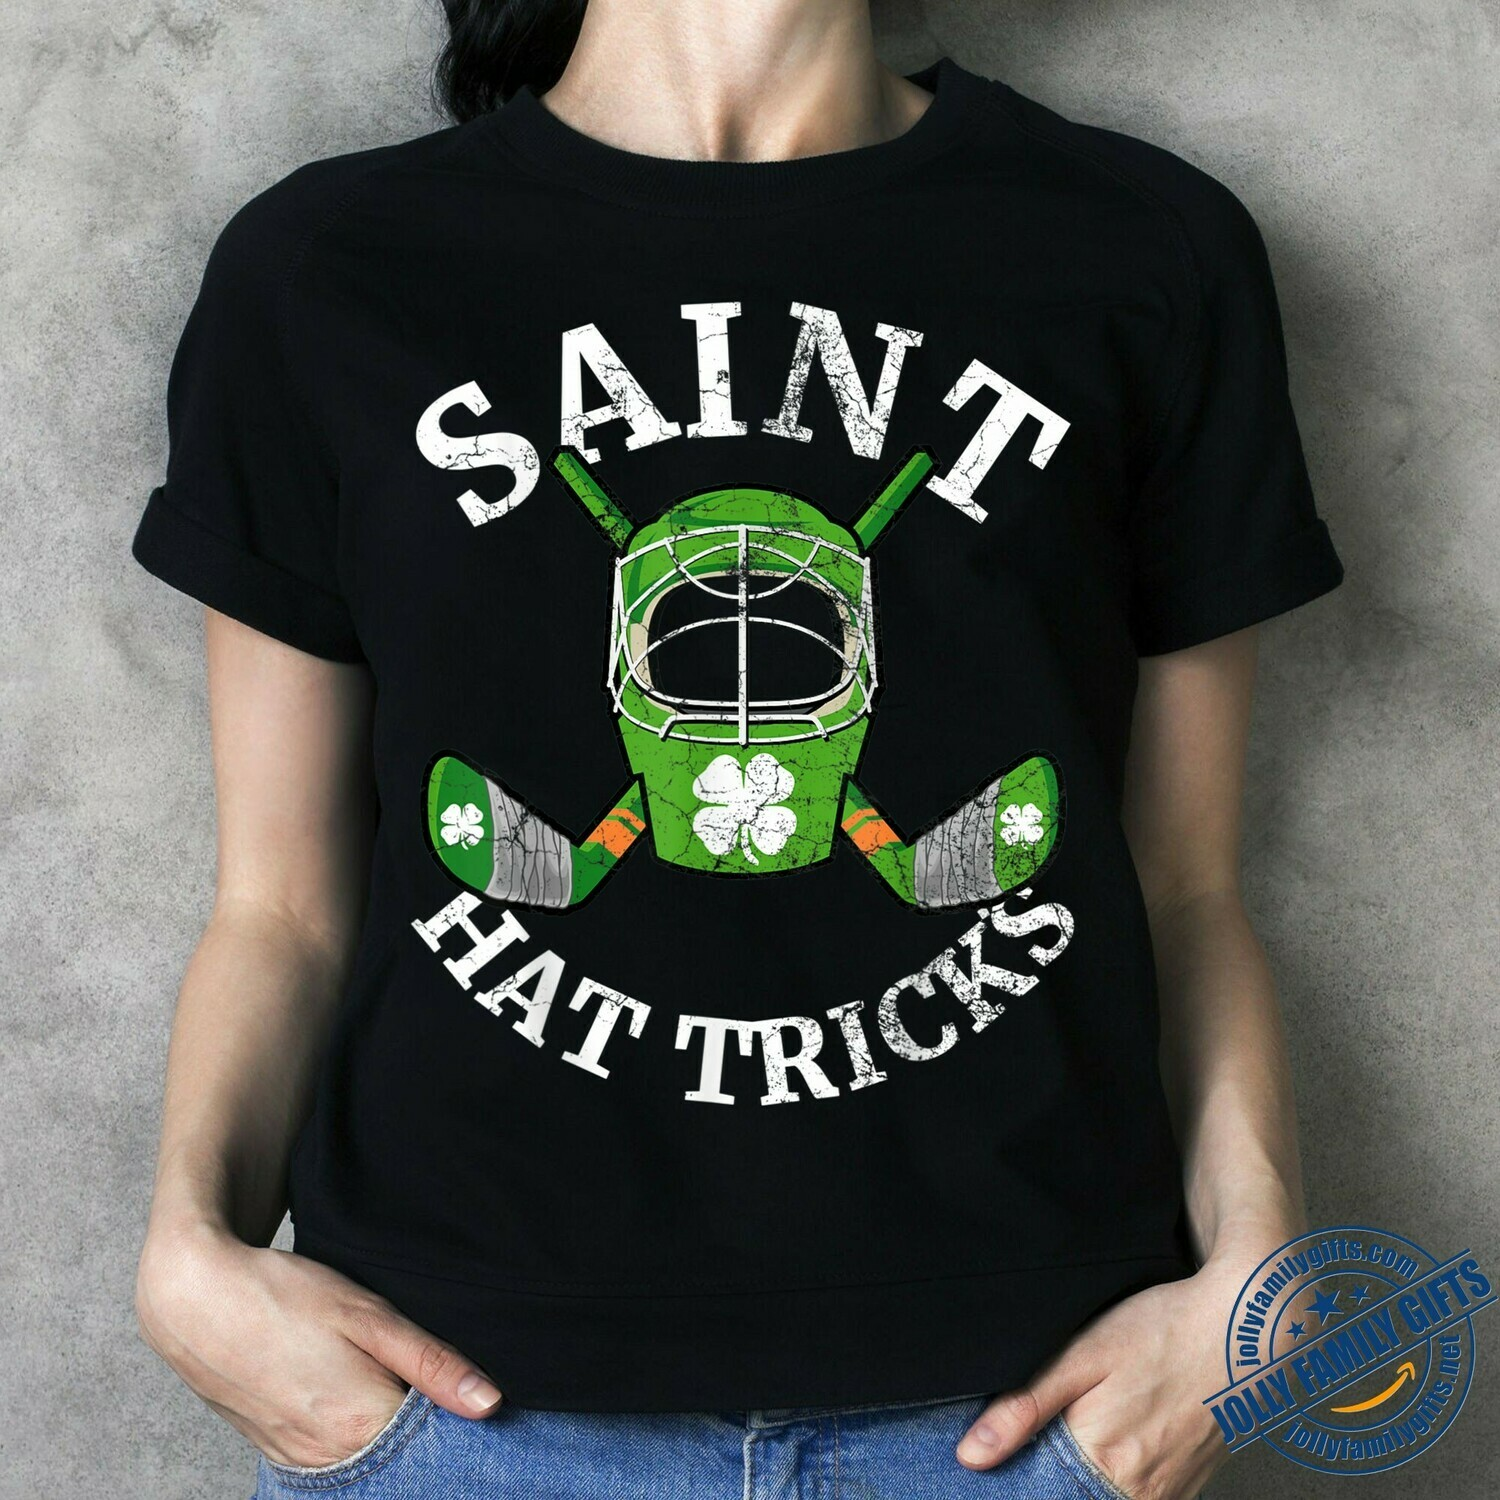 Saint Hat Tricks Ice Hockey Irish Shamrock clover St Patrick's Day  Unisex T-Shirt Hoodie Sweatshirt Sweater Plus Size for Ladies Women Men Kids Youth Gifts Tee Jolly Family Gifts